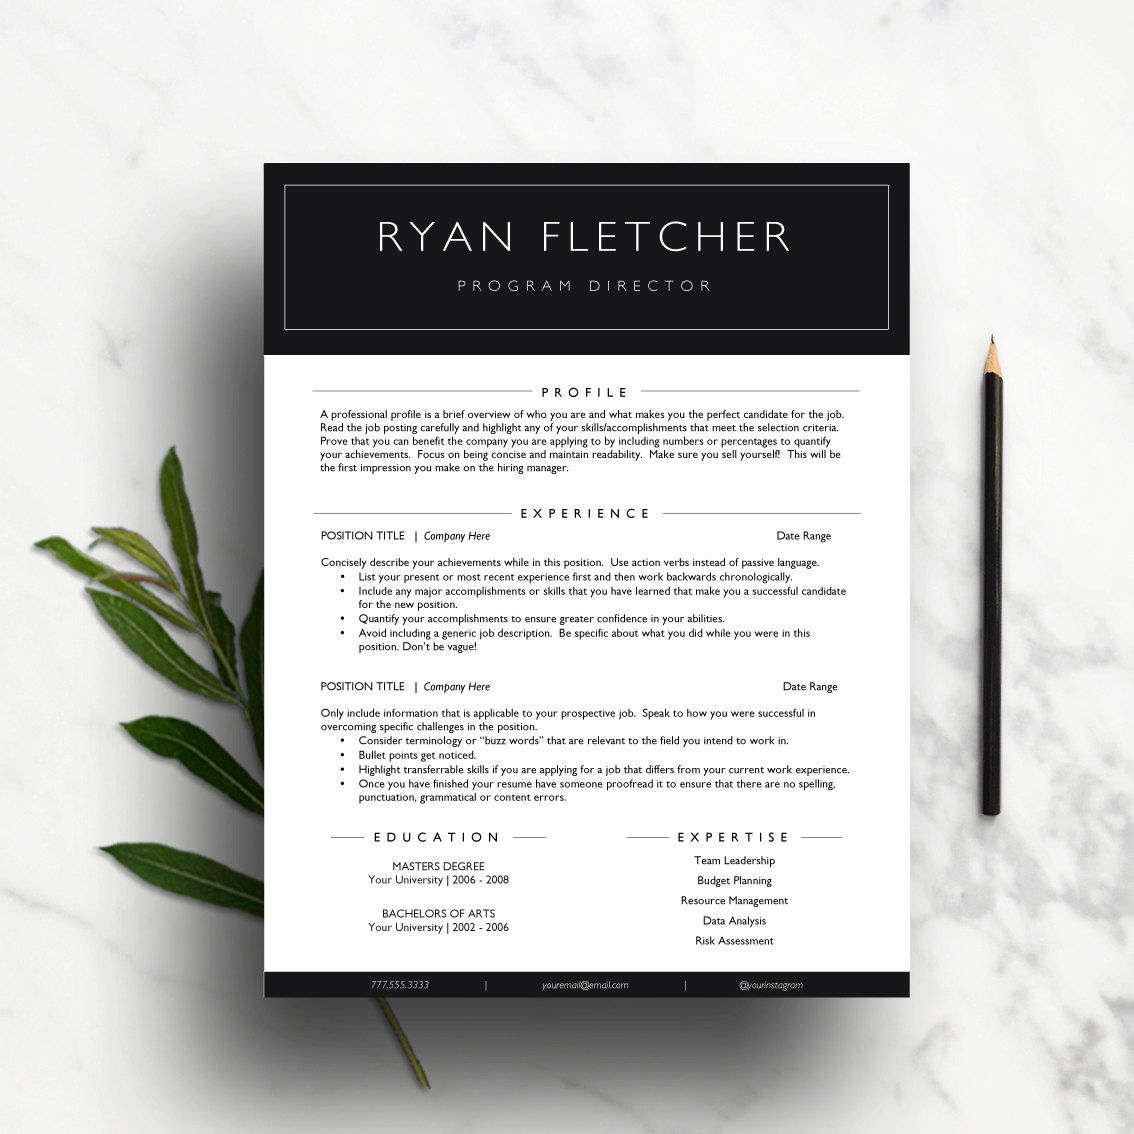 professional resume template ms word simple resume a4 us professional resume template modern cv template cover letter references page